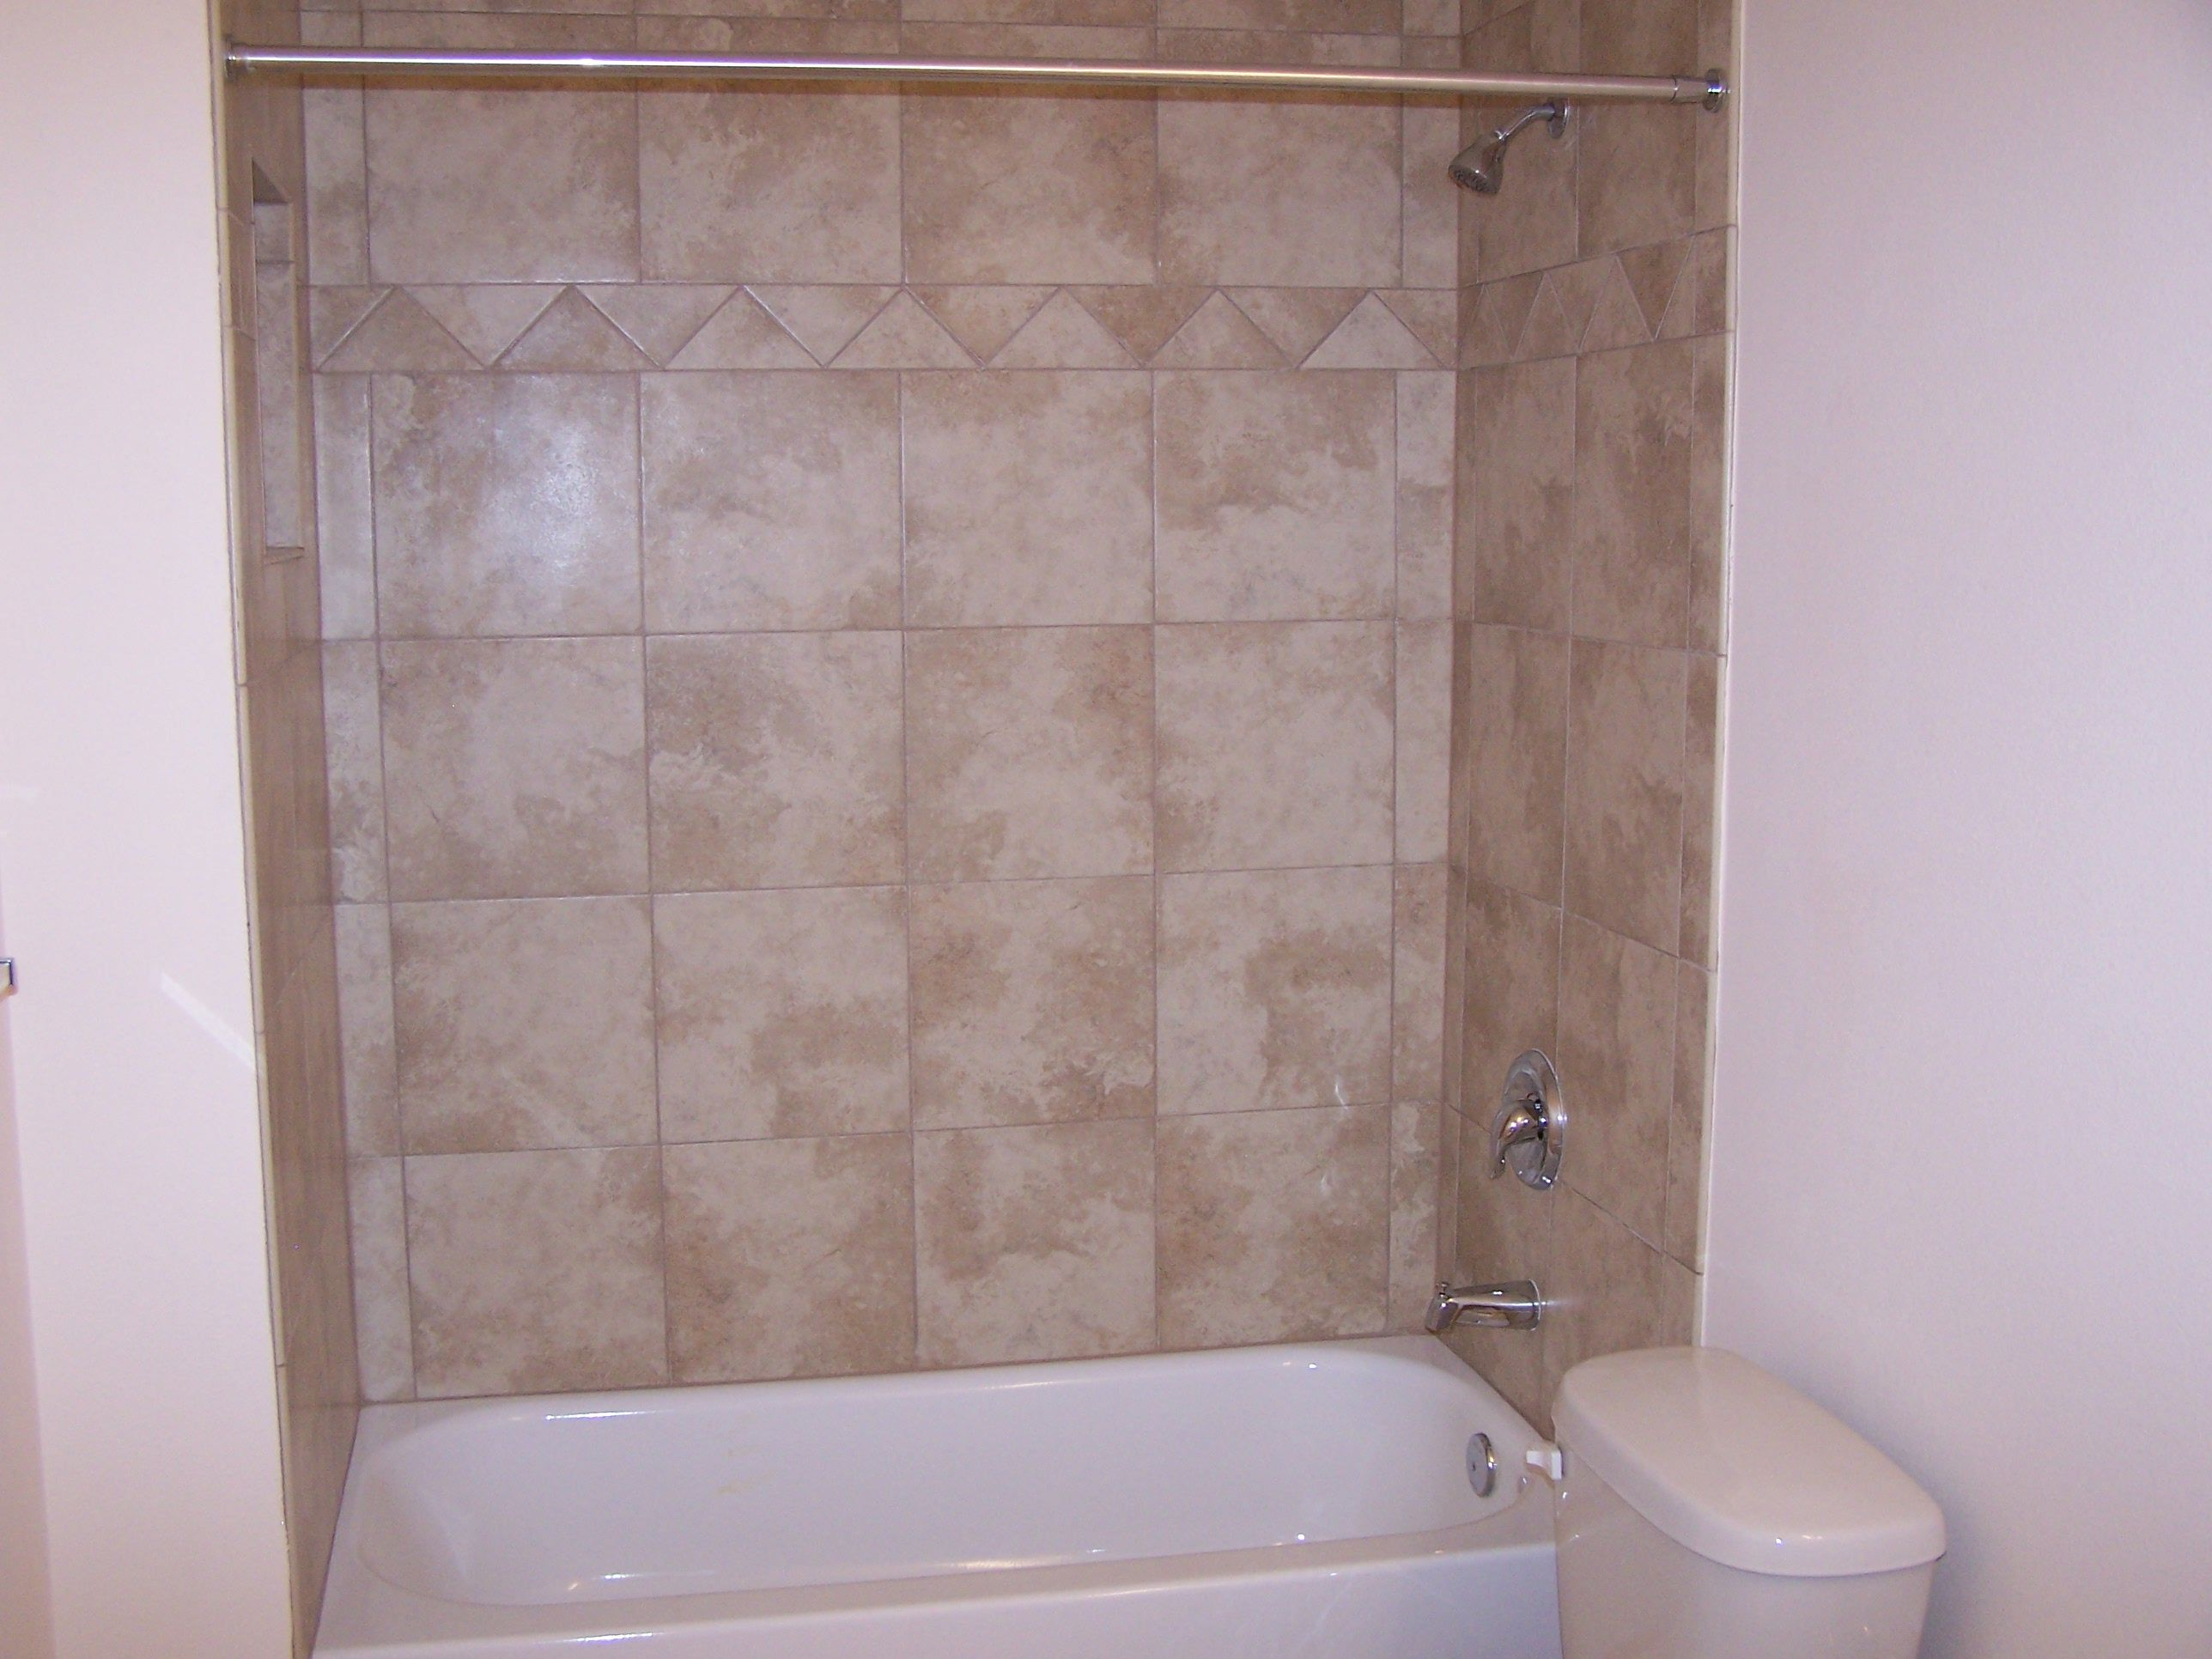 Ceramic bathroom tile 12x12 tile my house ideas for Ceramic tile bathroom ideas pictures